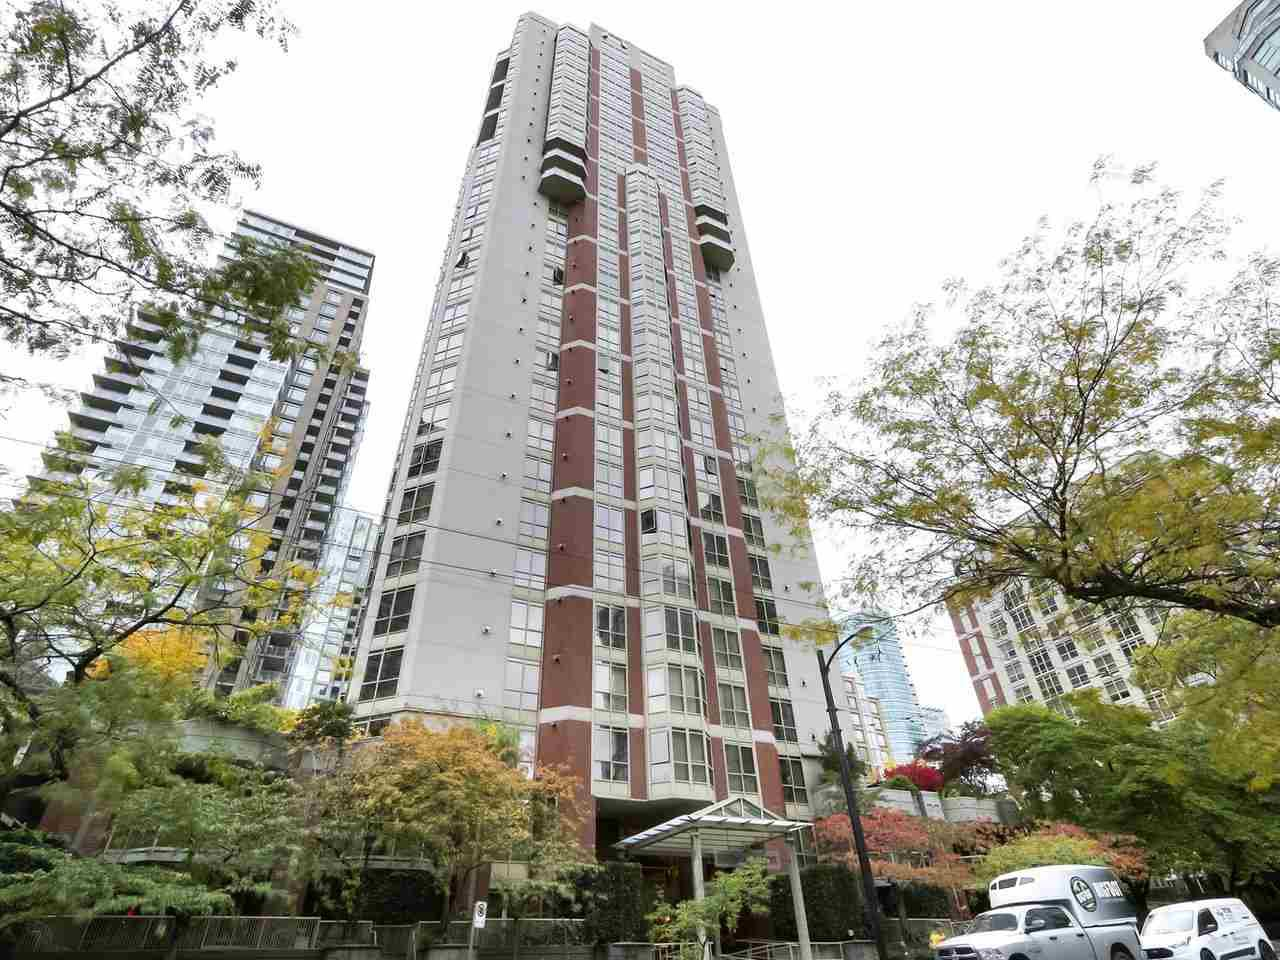 Main Photo: 1103 867 HAMILTON STREET in Vancouver: Downtown VW Condo for sale (Vancouver West)  : MLS®# R2413124